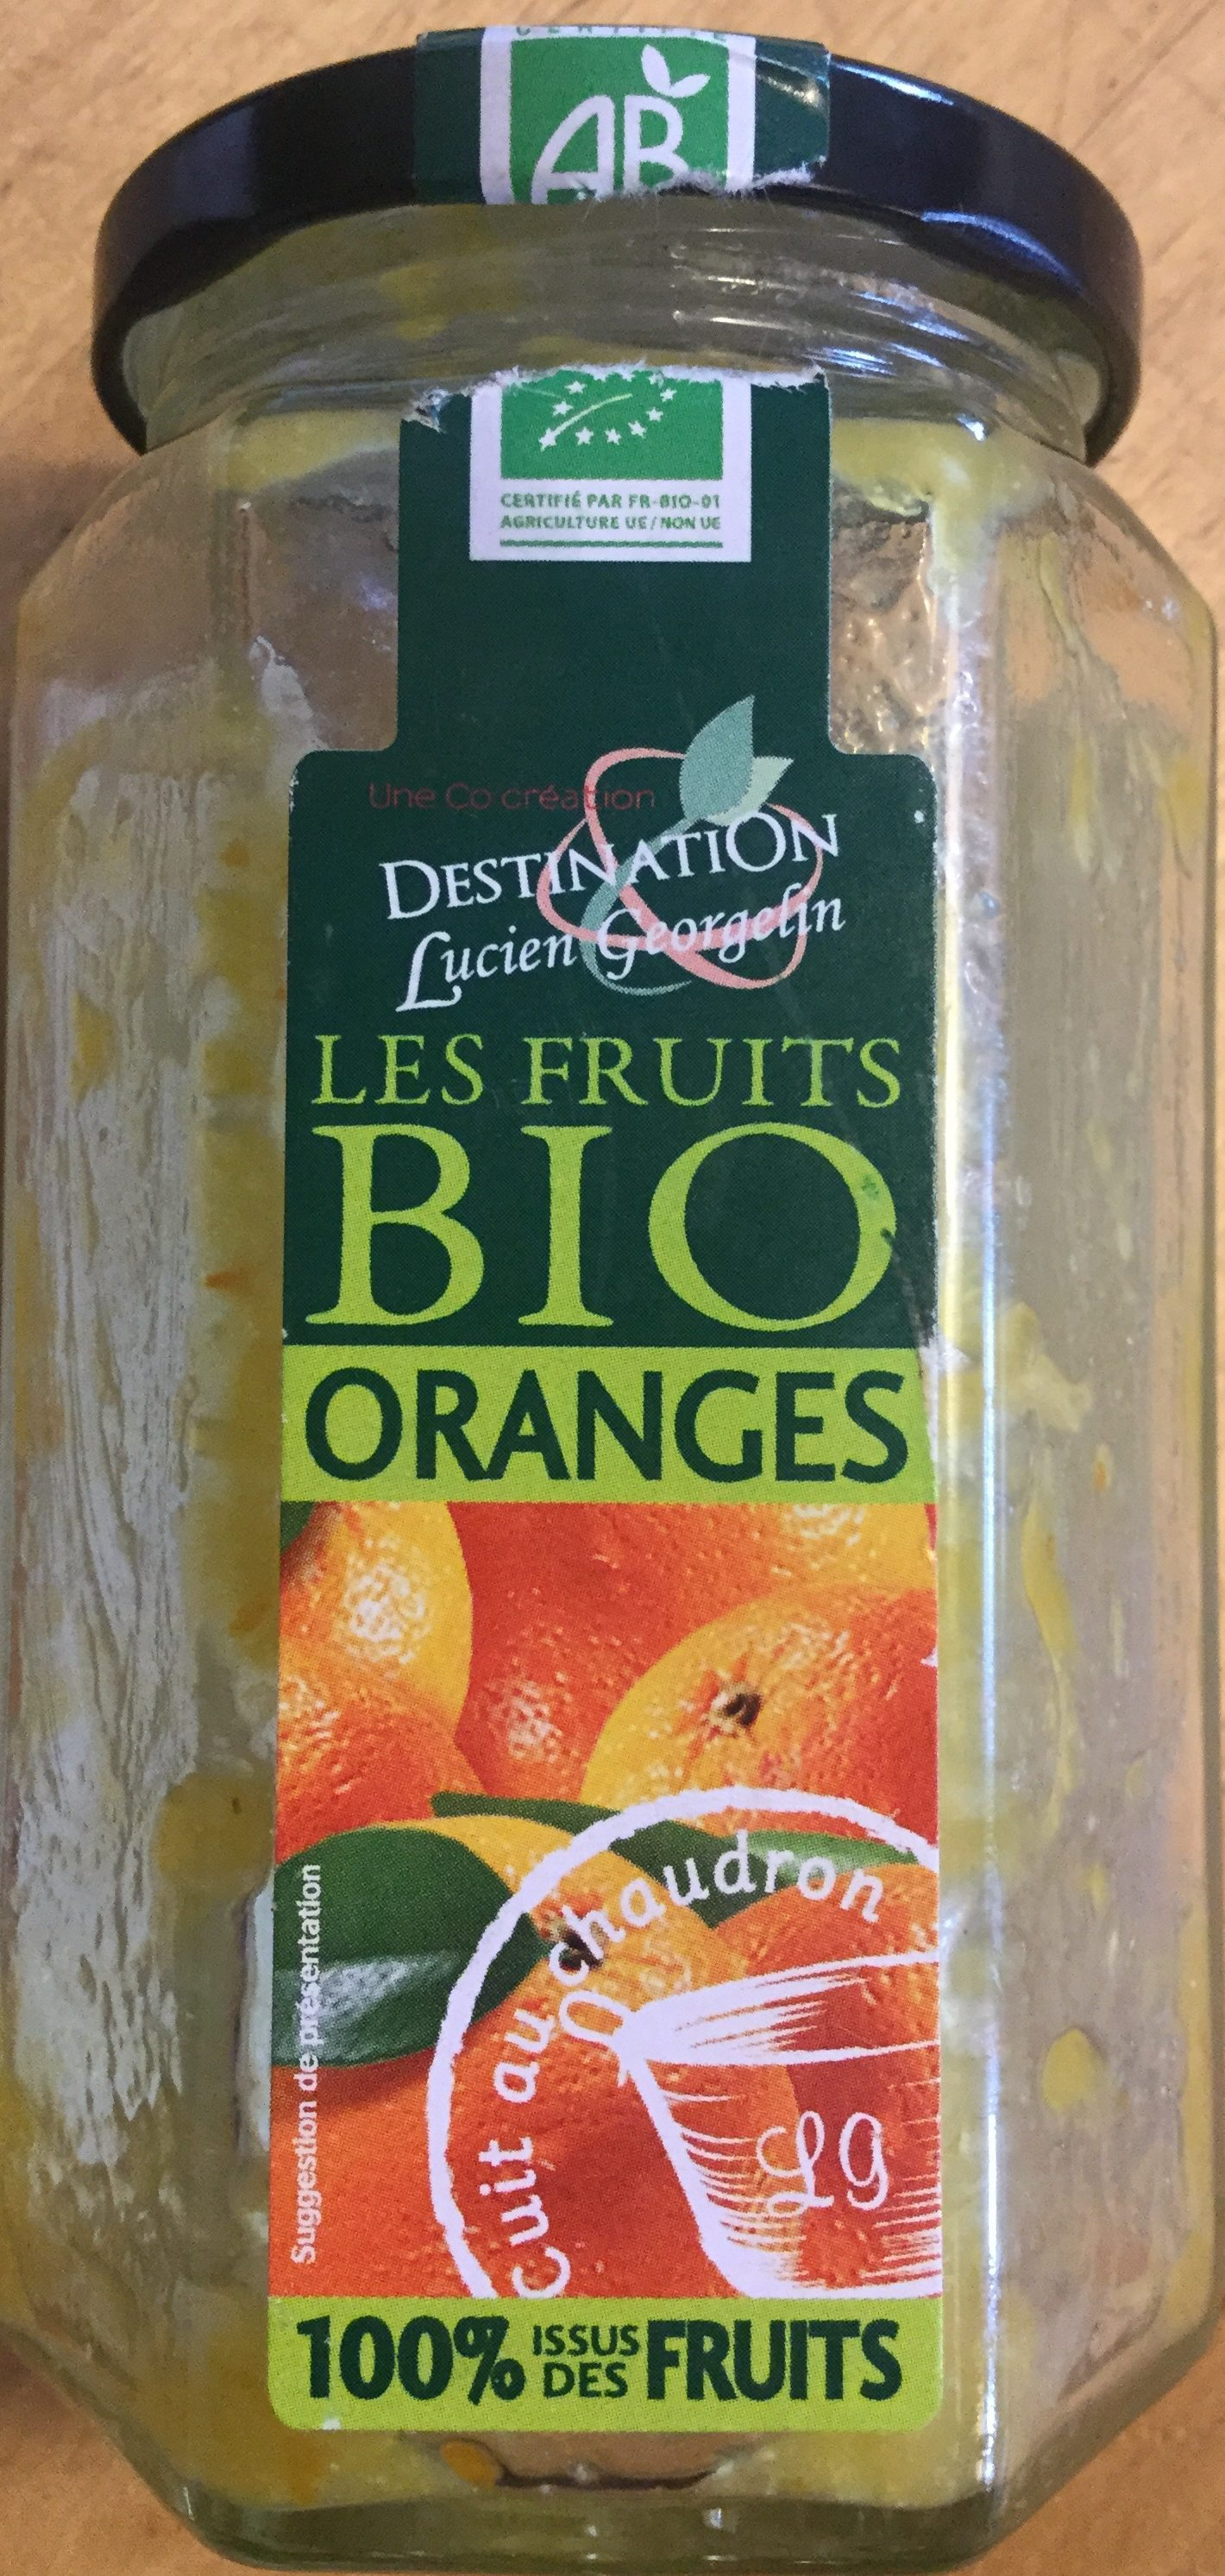 Les fruits bio orange - Prodotto - fr